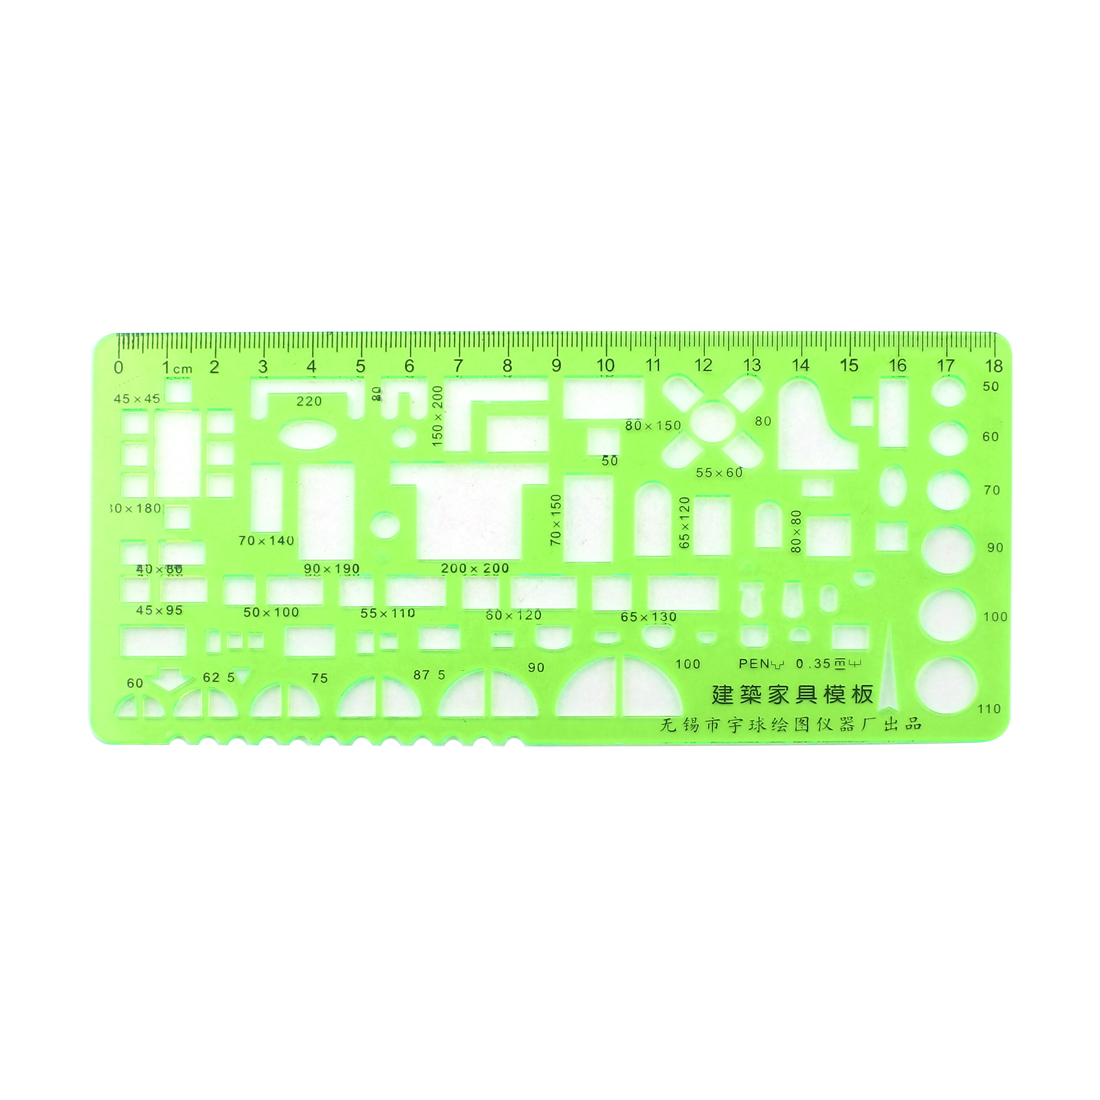 Drafting Drawing Stationery Plastic 18cm Metric Edge Template Ruler Clear Green